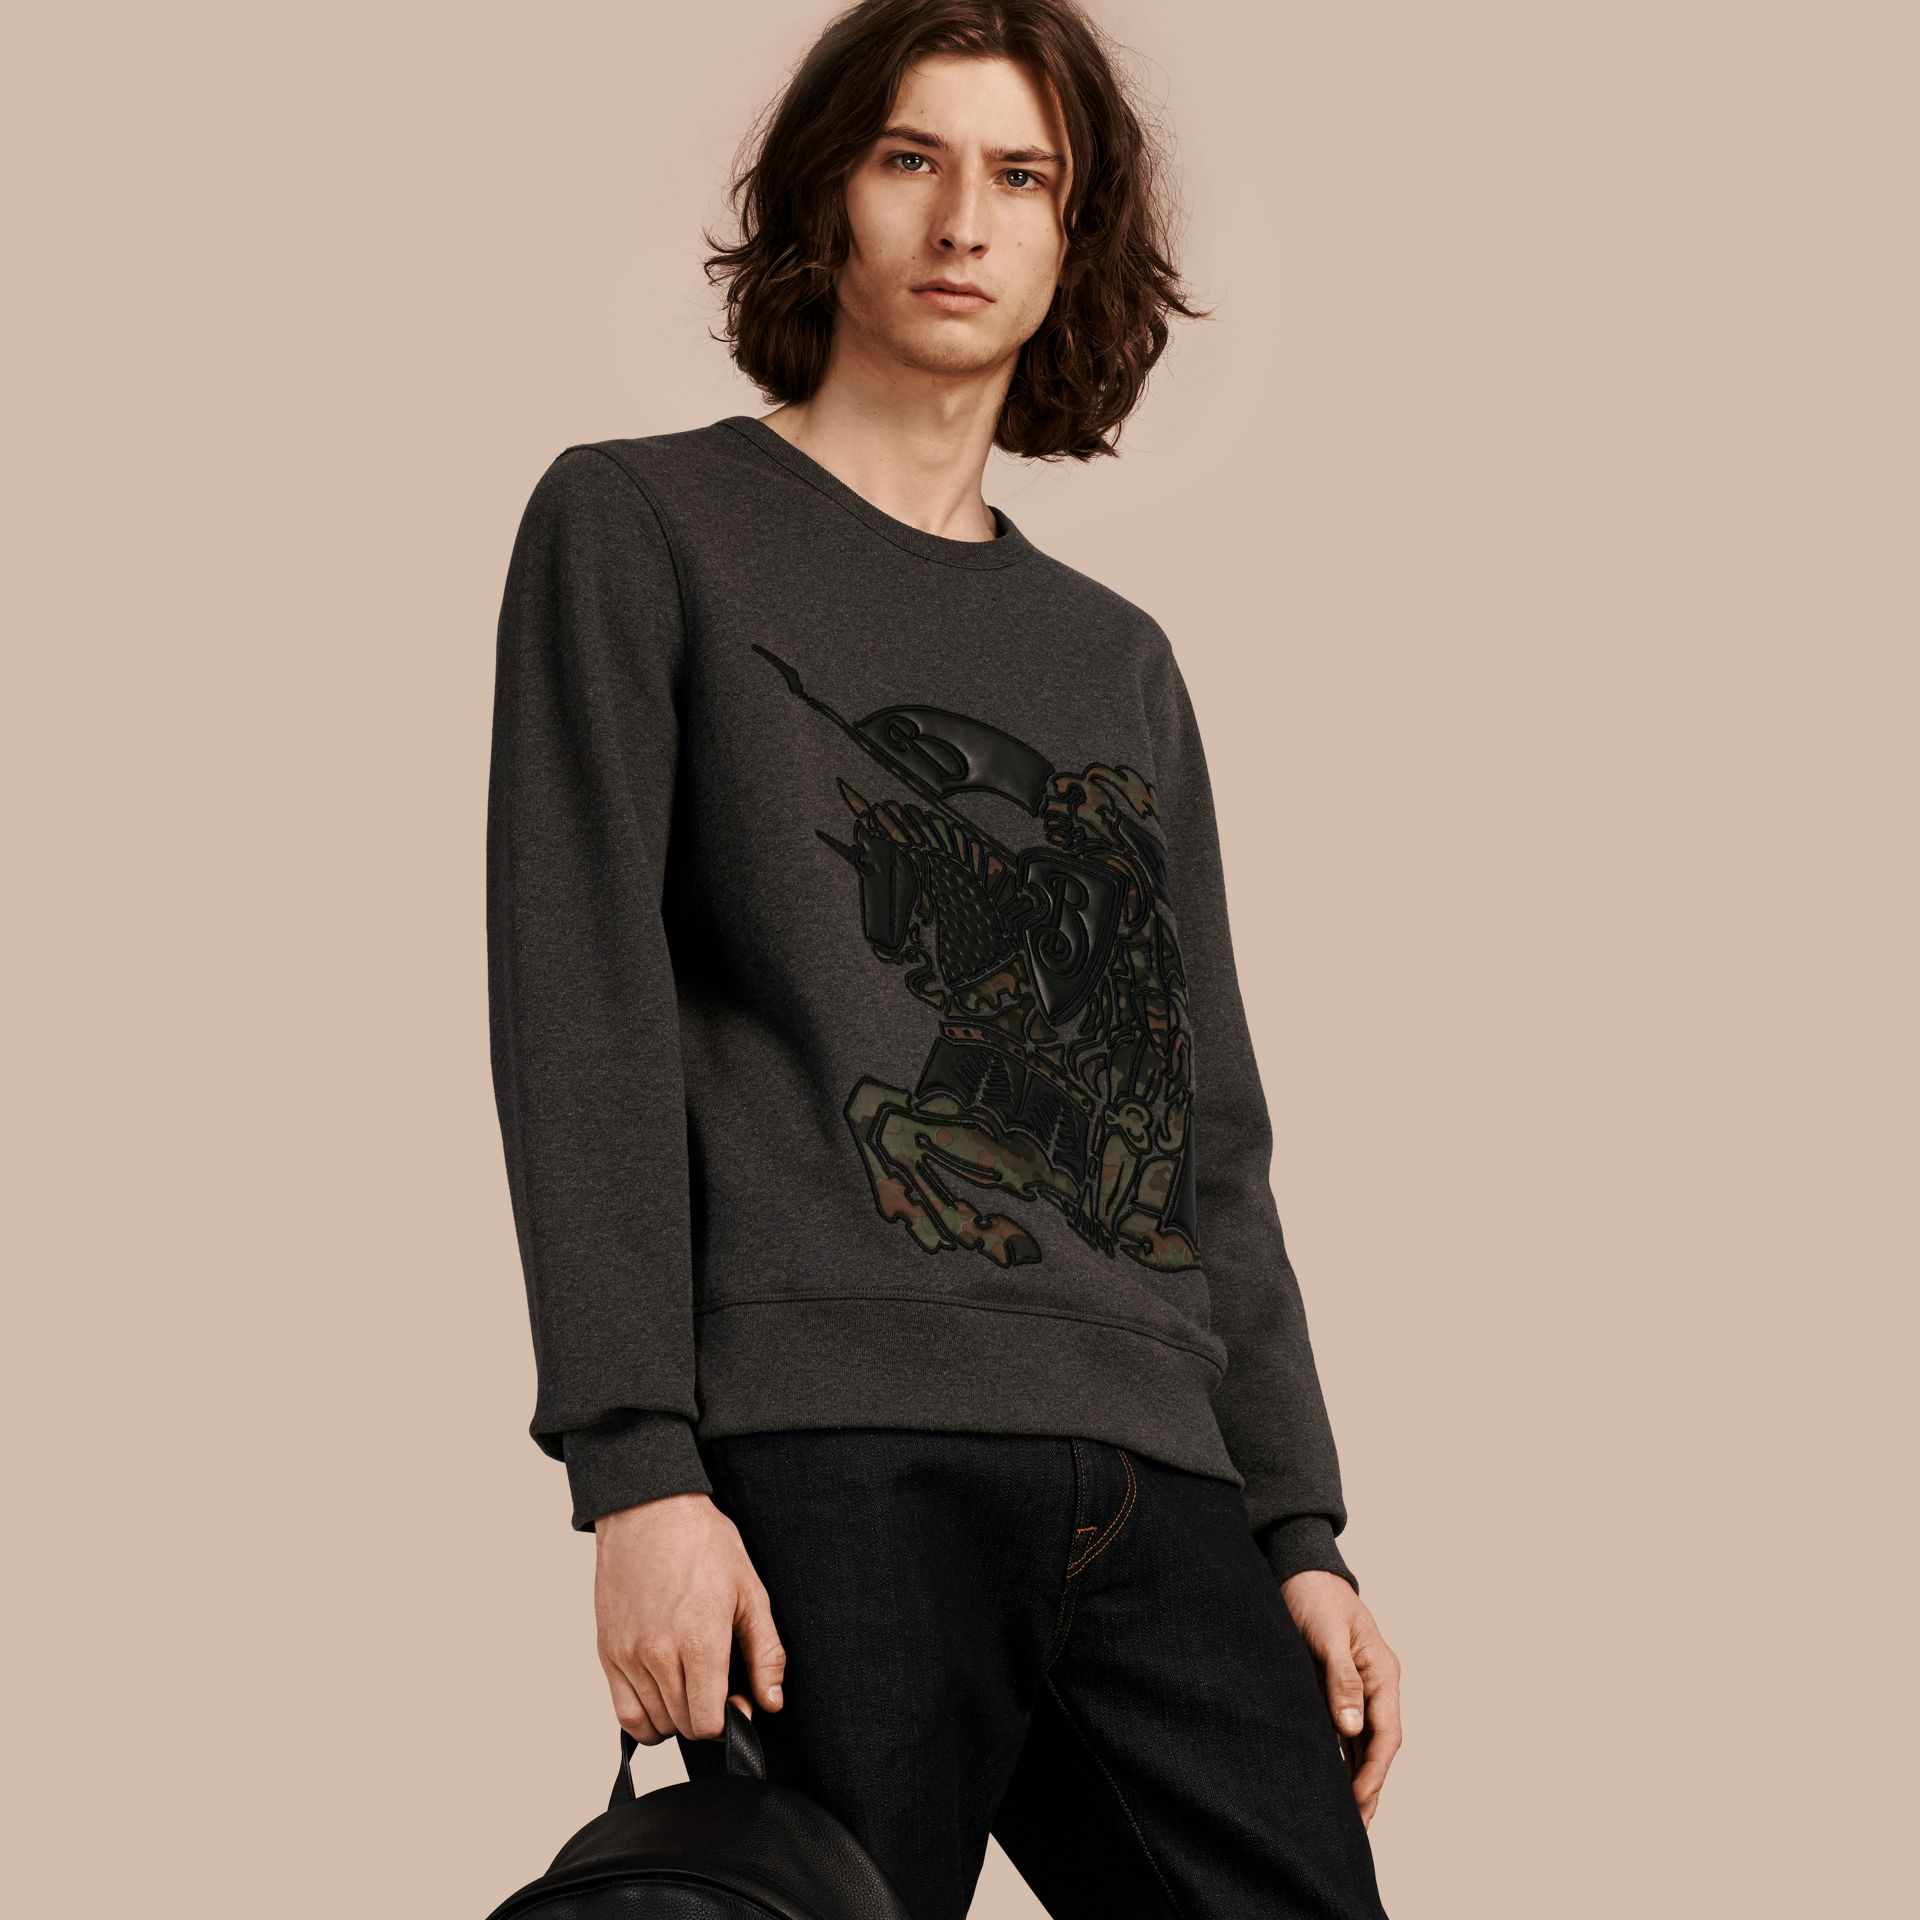 Charcoal melange Equestrian Knight Motif Cotton and Lambskin Sweatshirt - gallery image 1